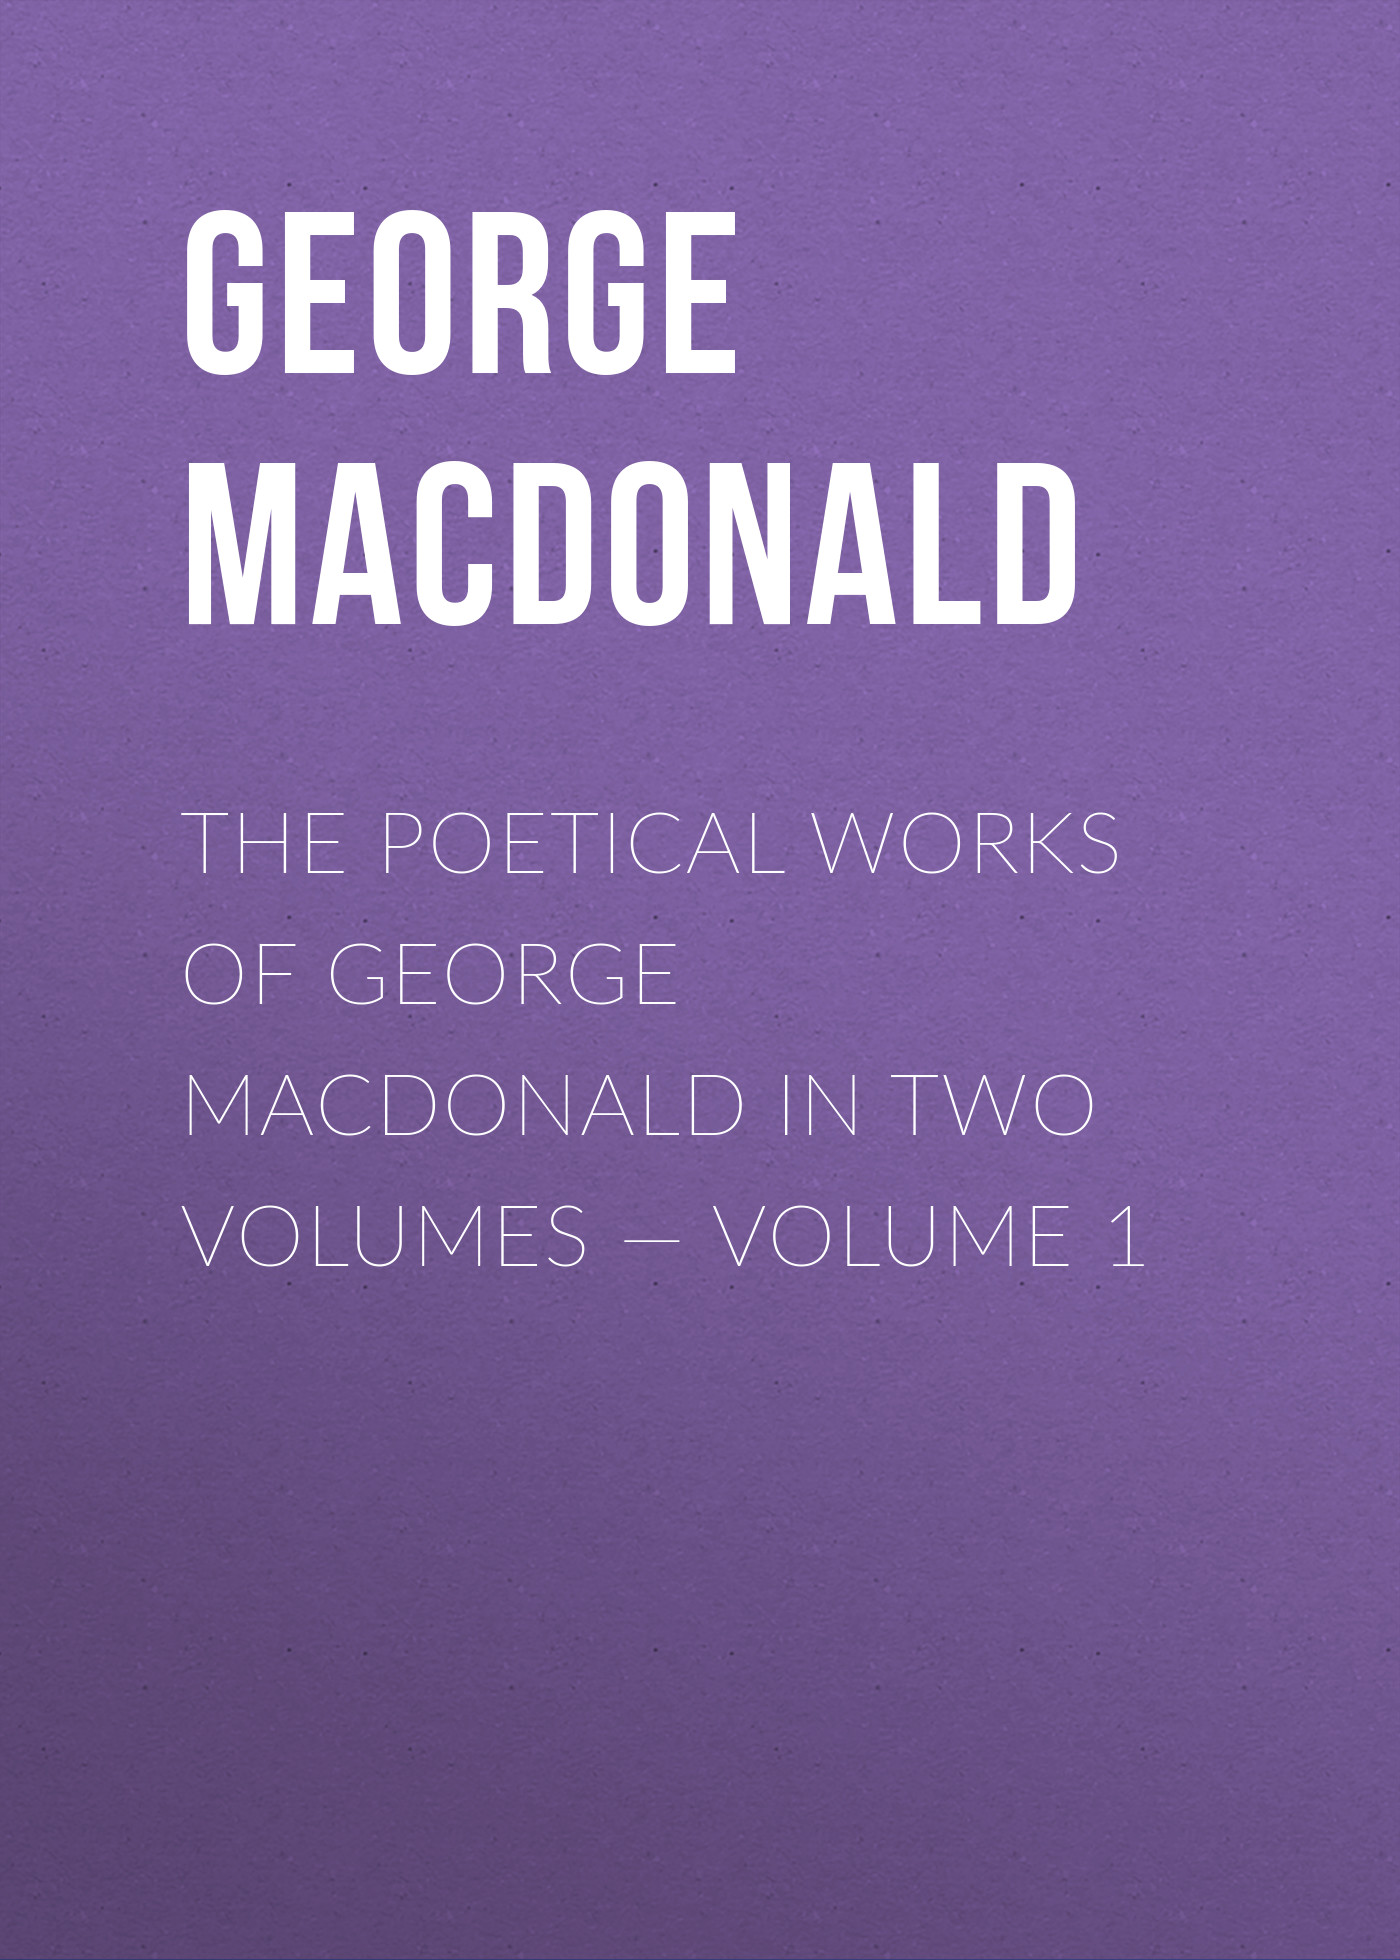 George MacDonald The poetical works of George MacDonald in two volumes — Volume 1 george macdonald a double story